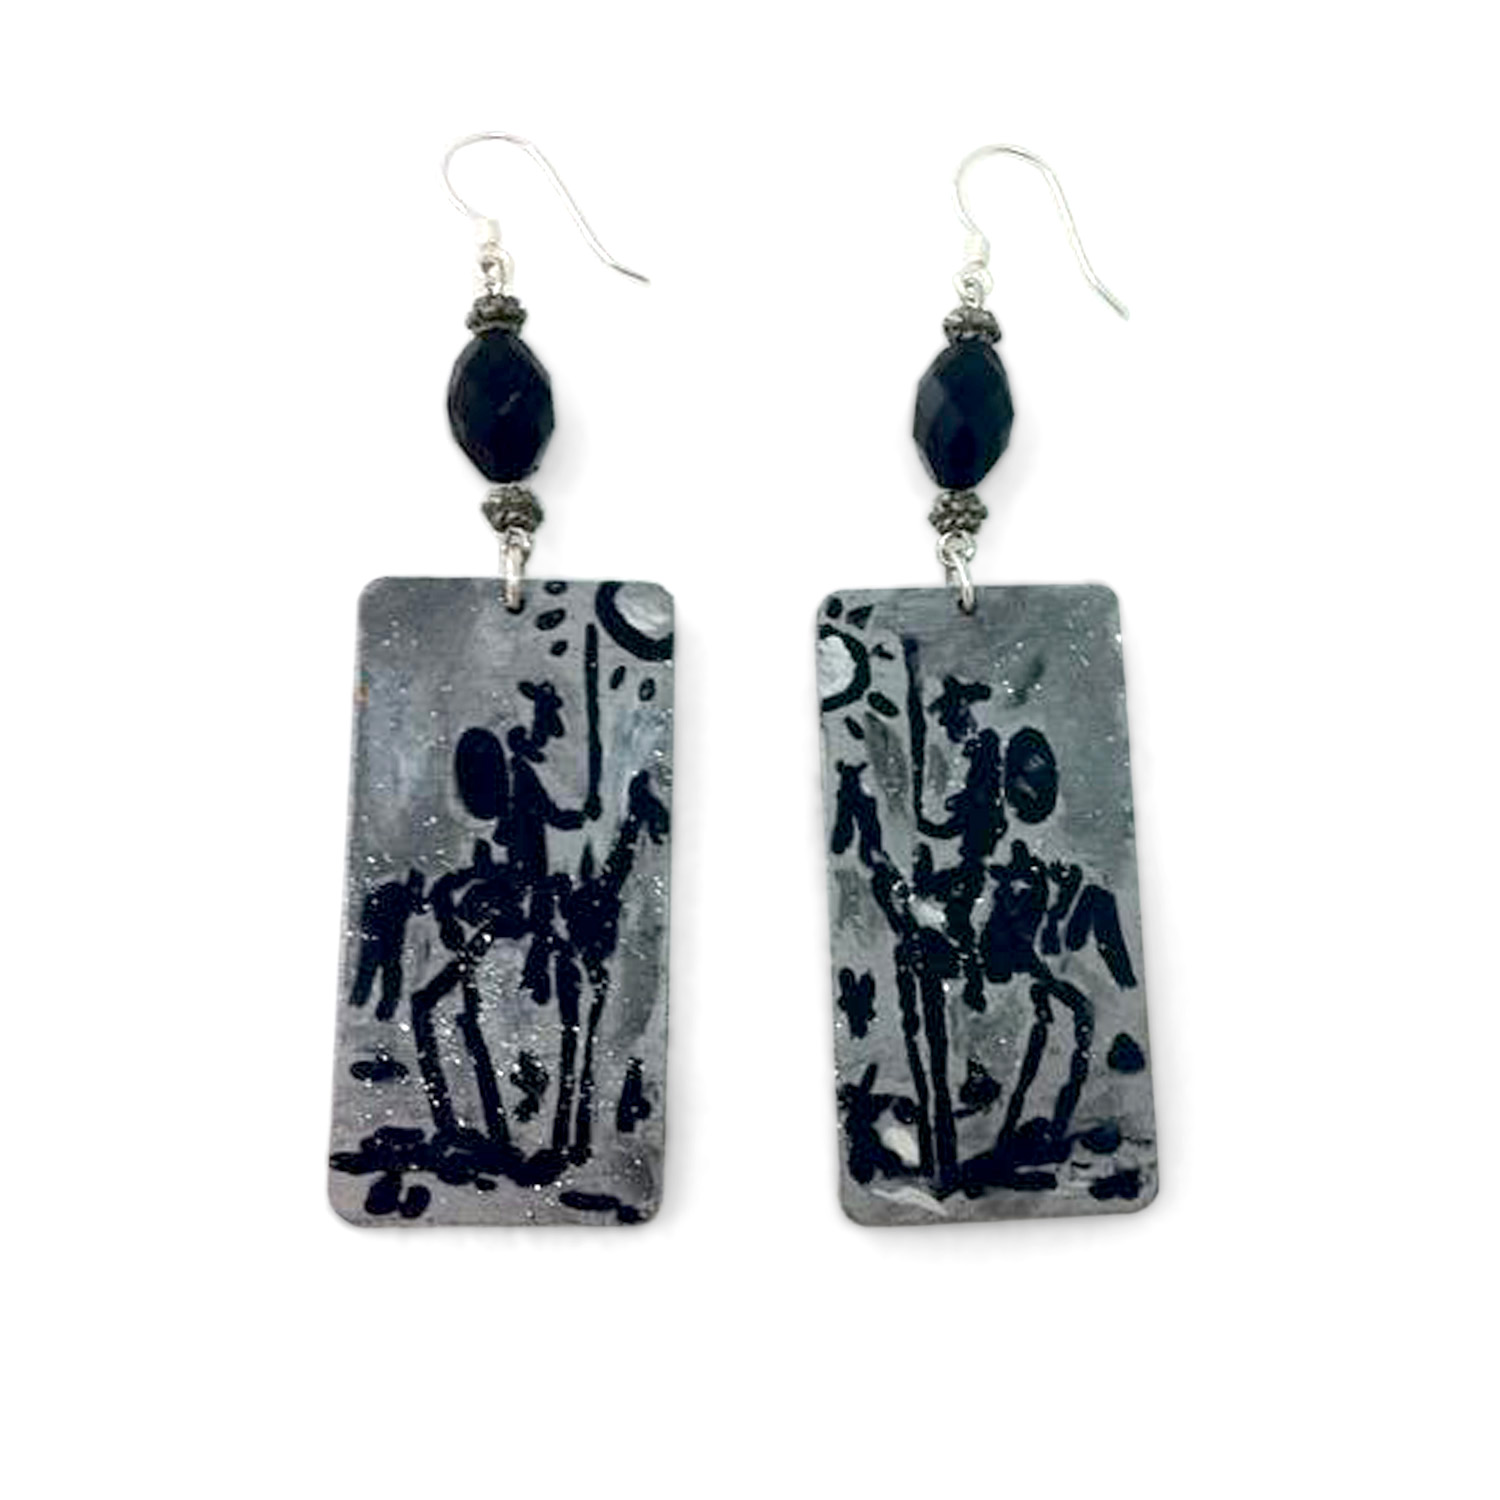 Hand-painted earrings - Don Quixote by Picasso